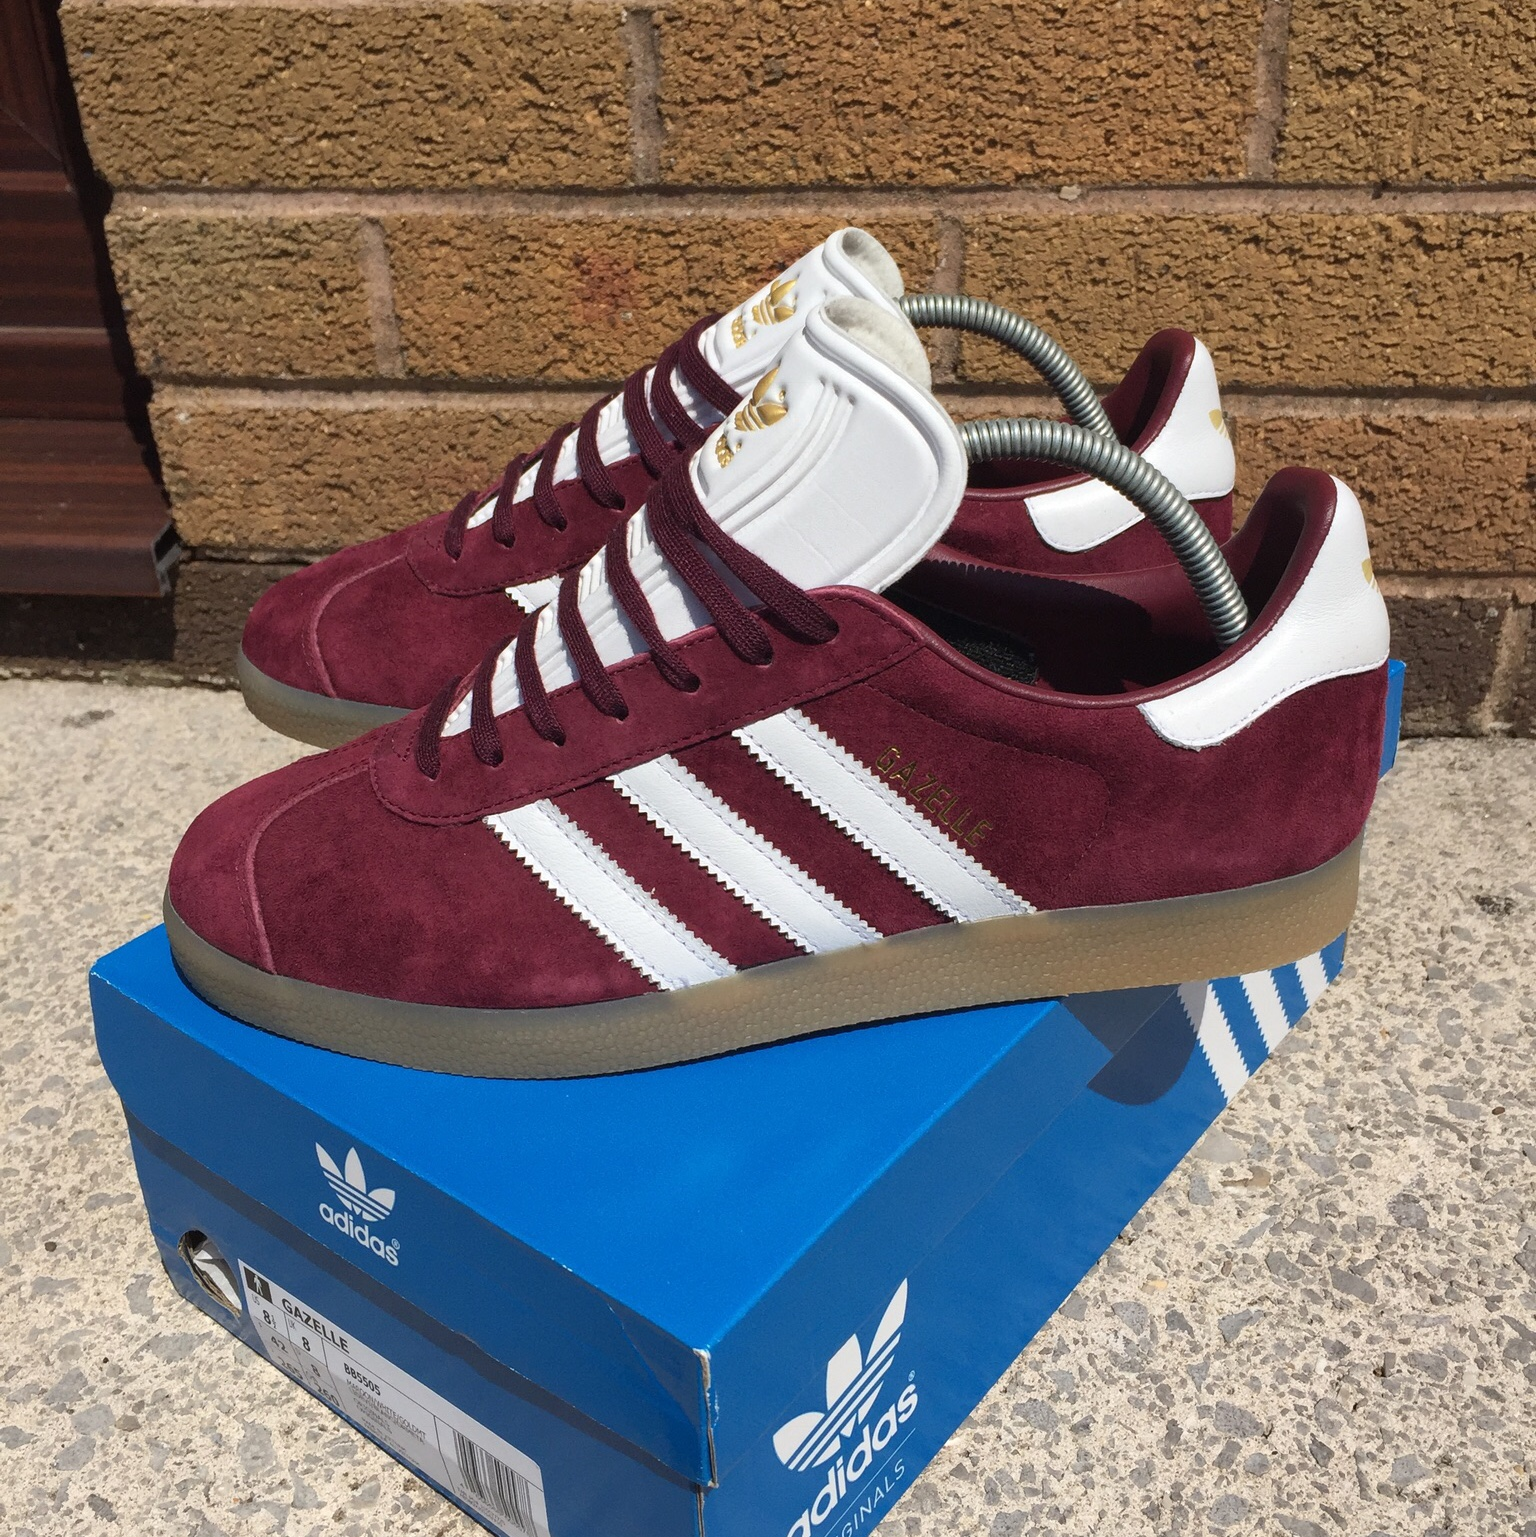 Adidas gazelle burgundy/gum uk 8, Trainers are in...